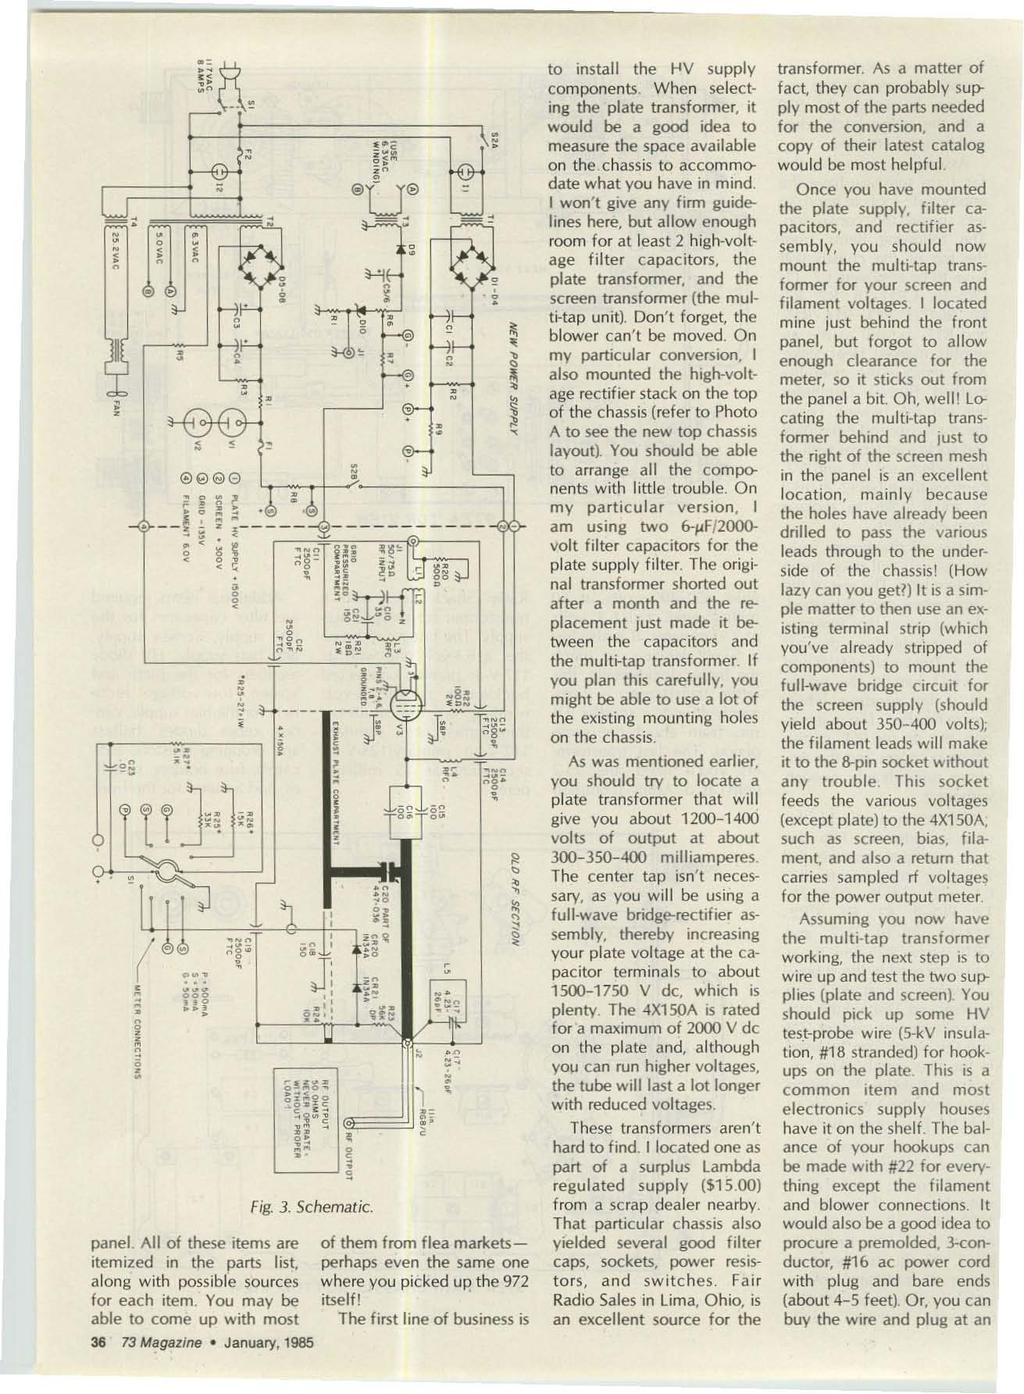 Amateur Radios Technical Journal Pdf Residential Electrical Wiring Diagrams Price Usd 1000 Minorder 500 00 C 000 I 0egg L